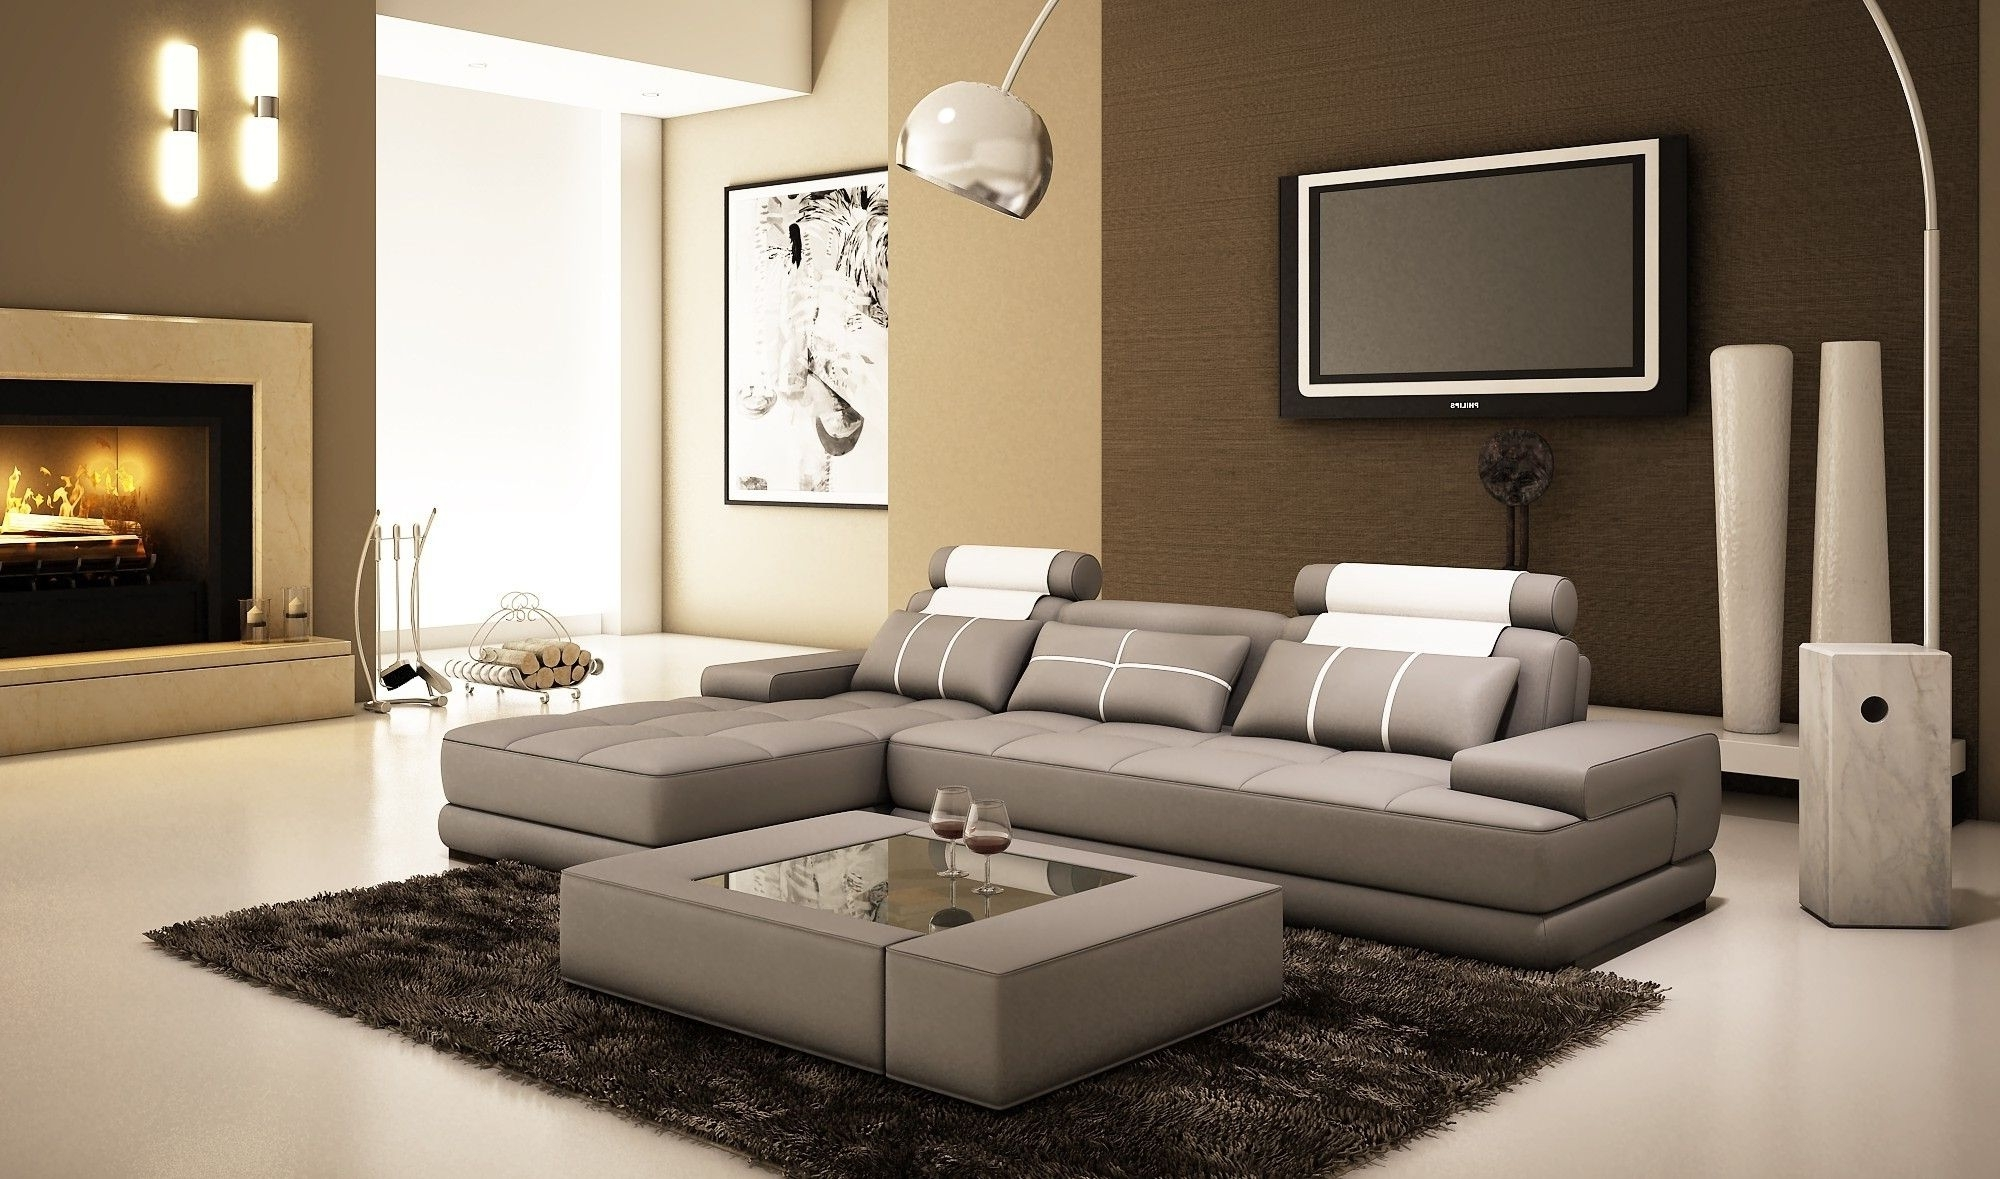 L Shaped Couches With Chaise With Regard To Most Current Gray Leather L Shaped Sectional Couch With Chaise Lounge And (View 14 of 15)